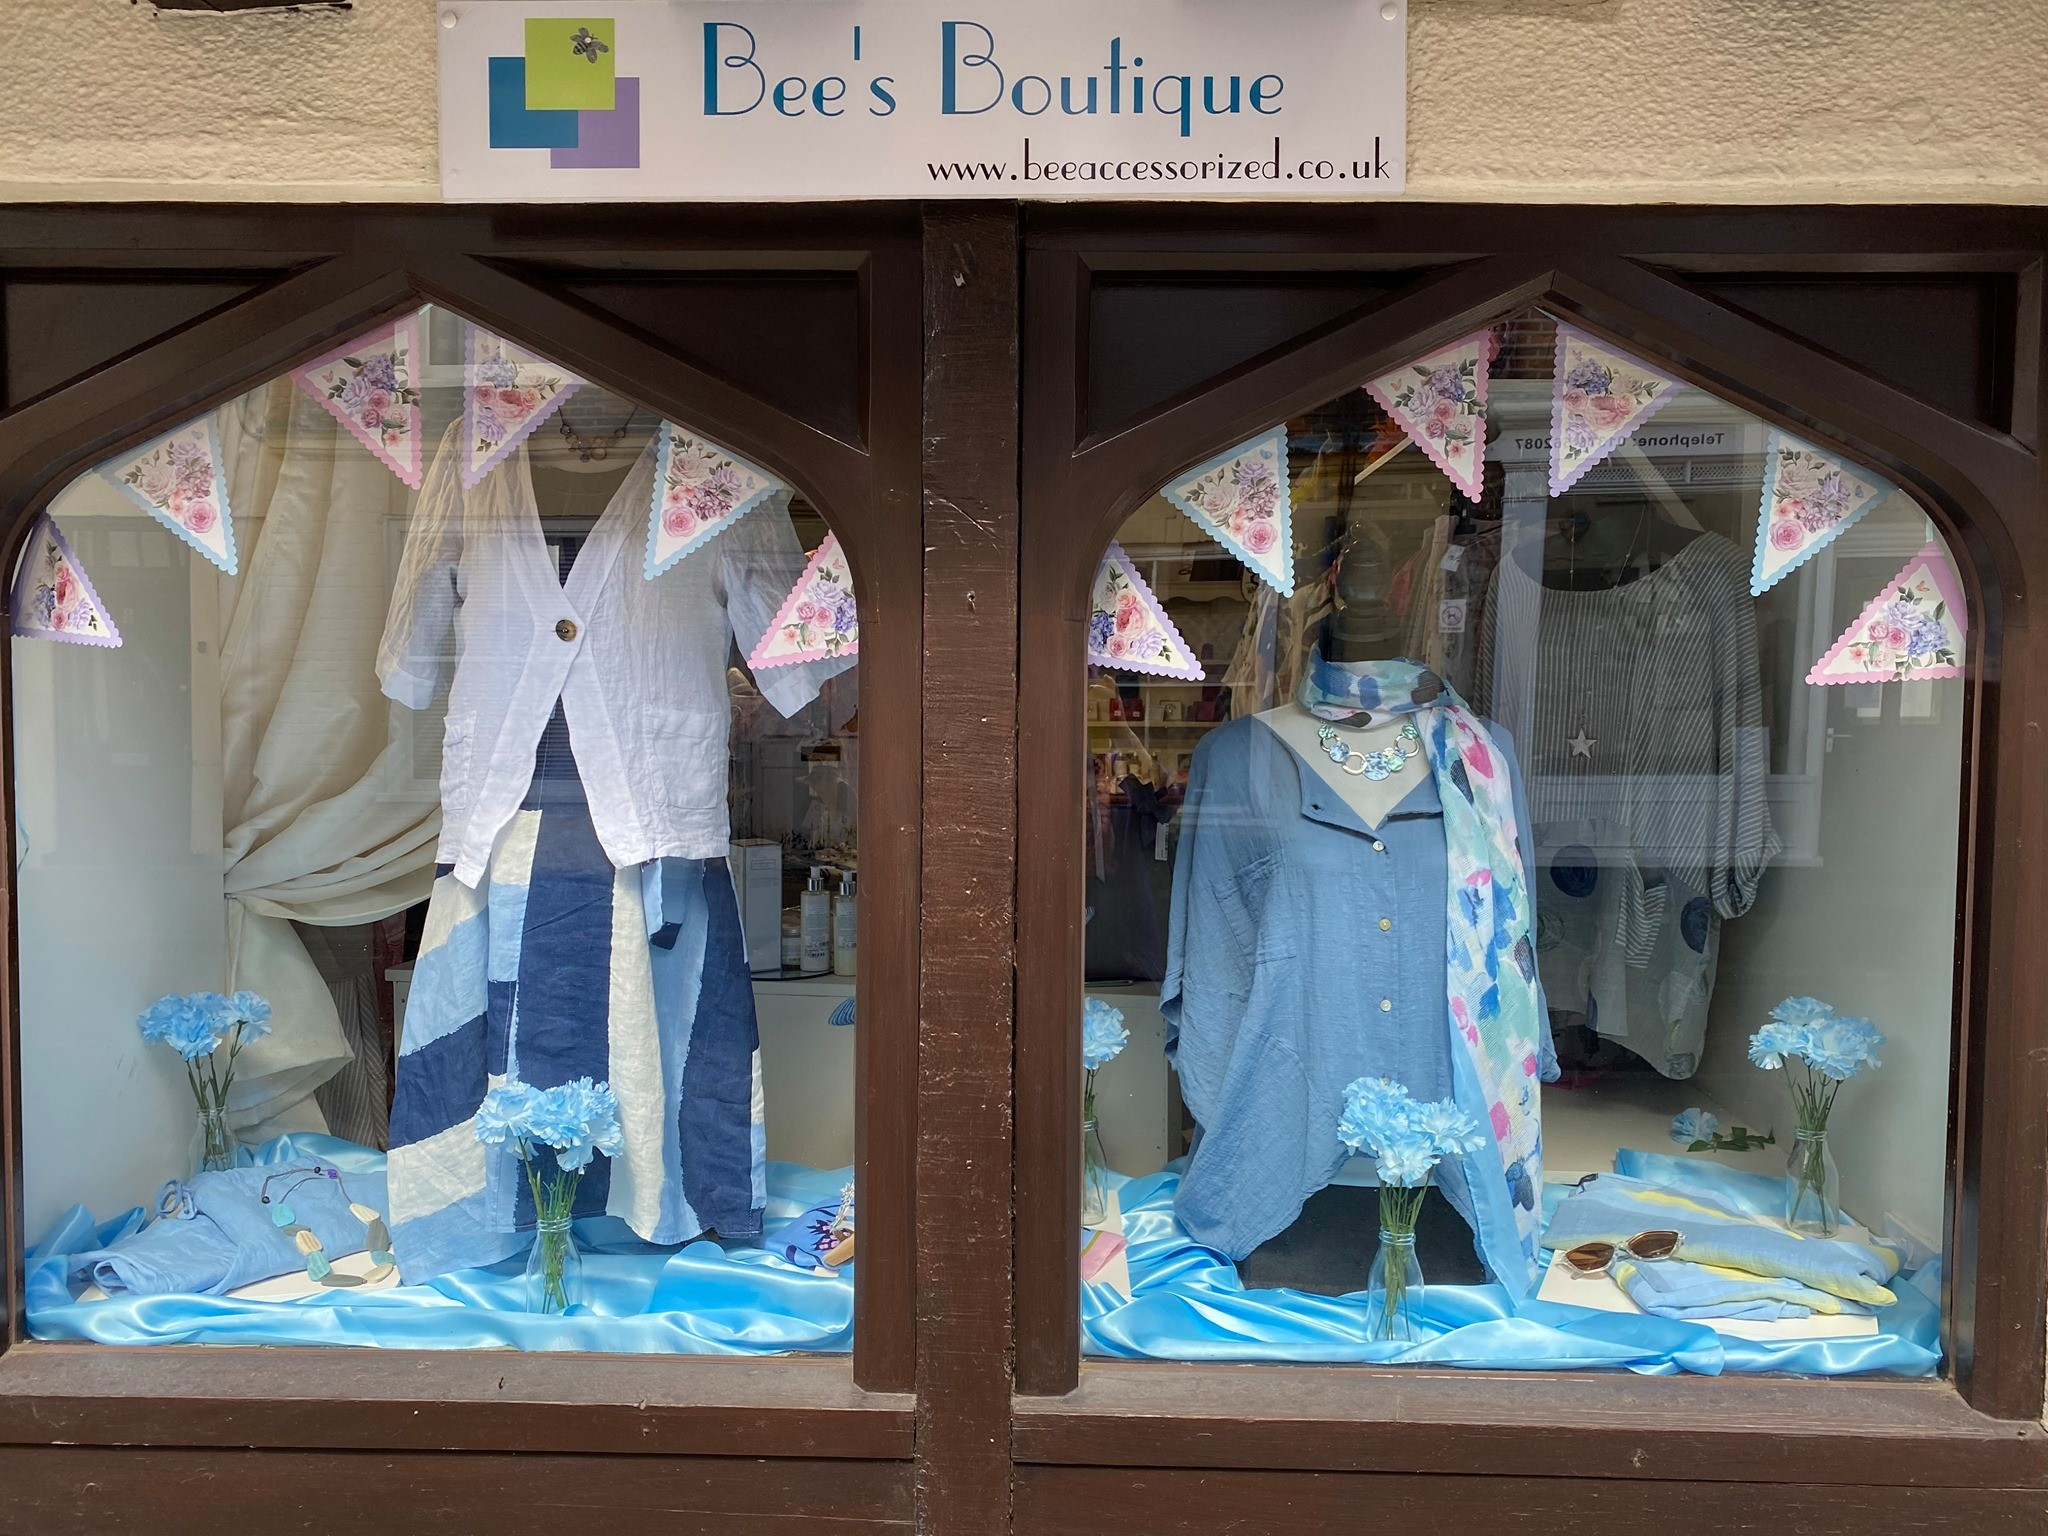 Bee's Boutique